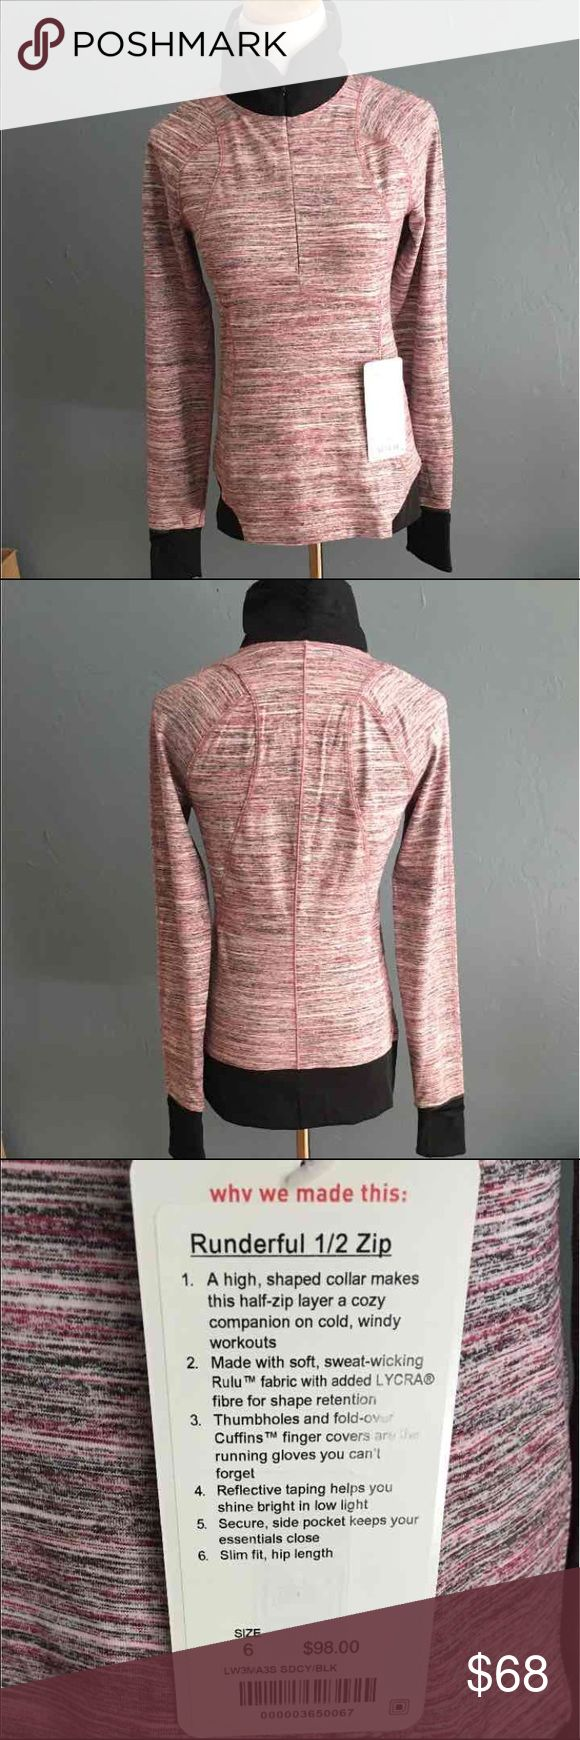 Lululemon Runderful 1/2 zip 6 New with tags, without  flaws! Happy shopping! lululemon athletica Tops Tees - Long Sleeve